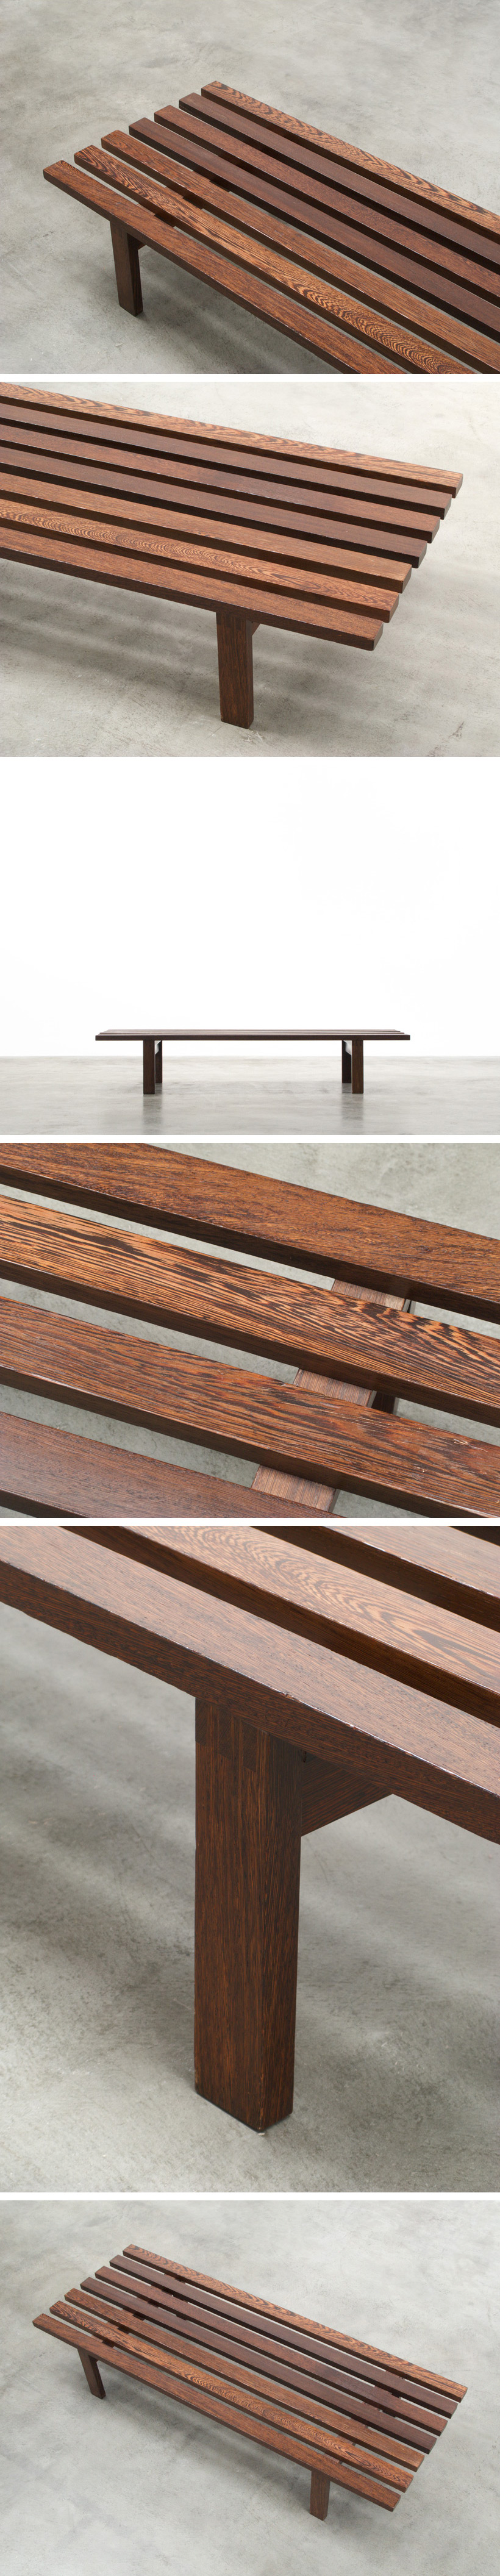 Martin Visser slat bench wenge wood made for Spectrum Large